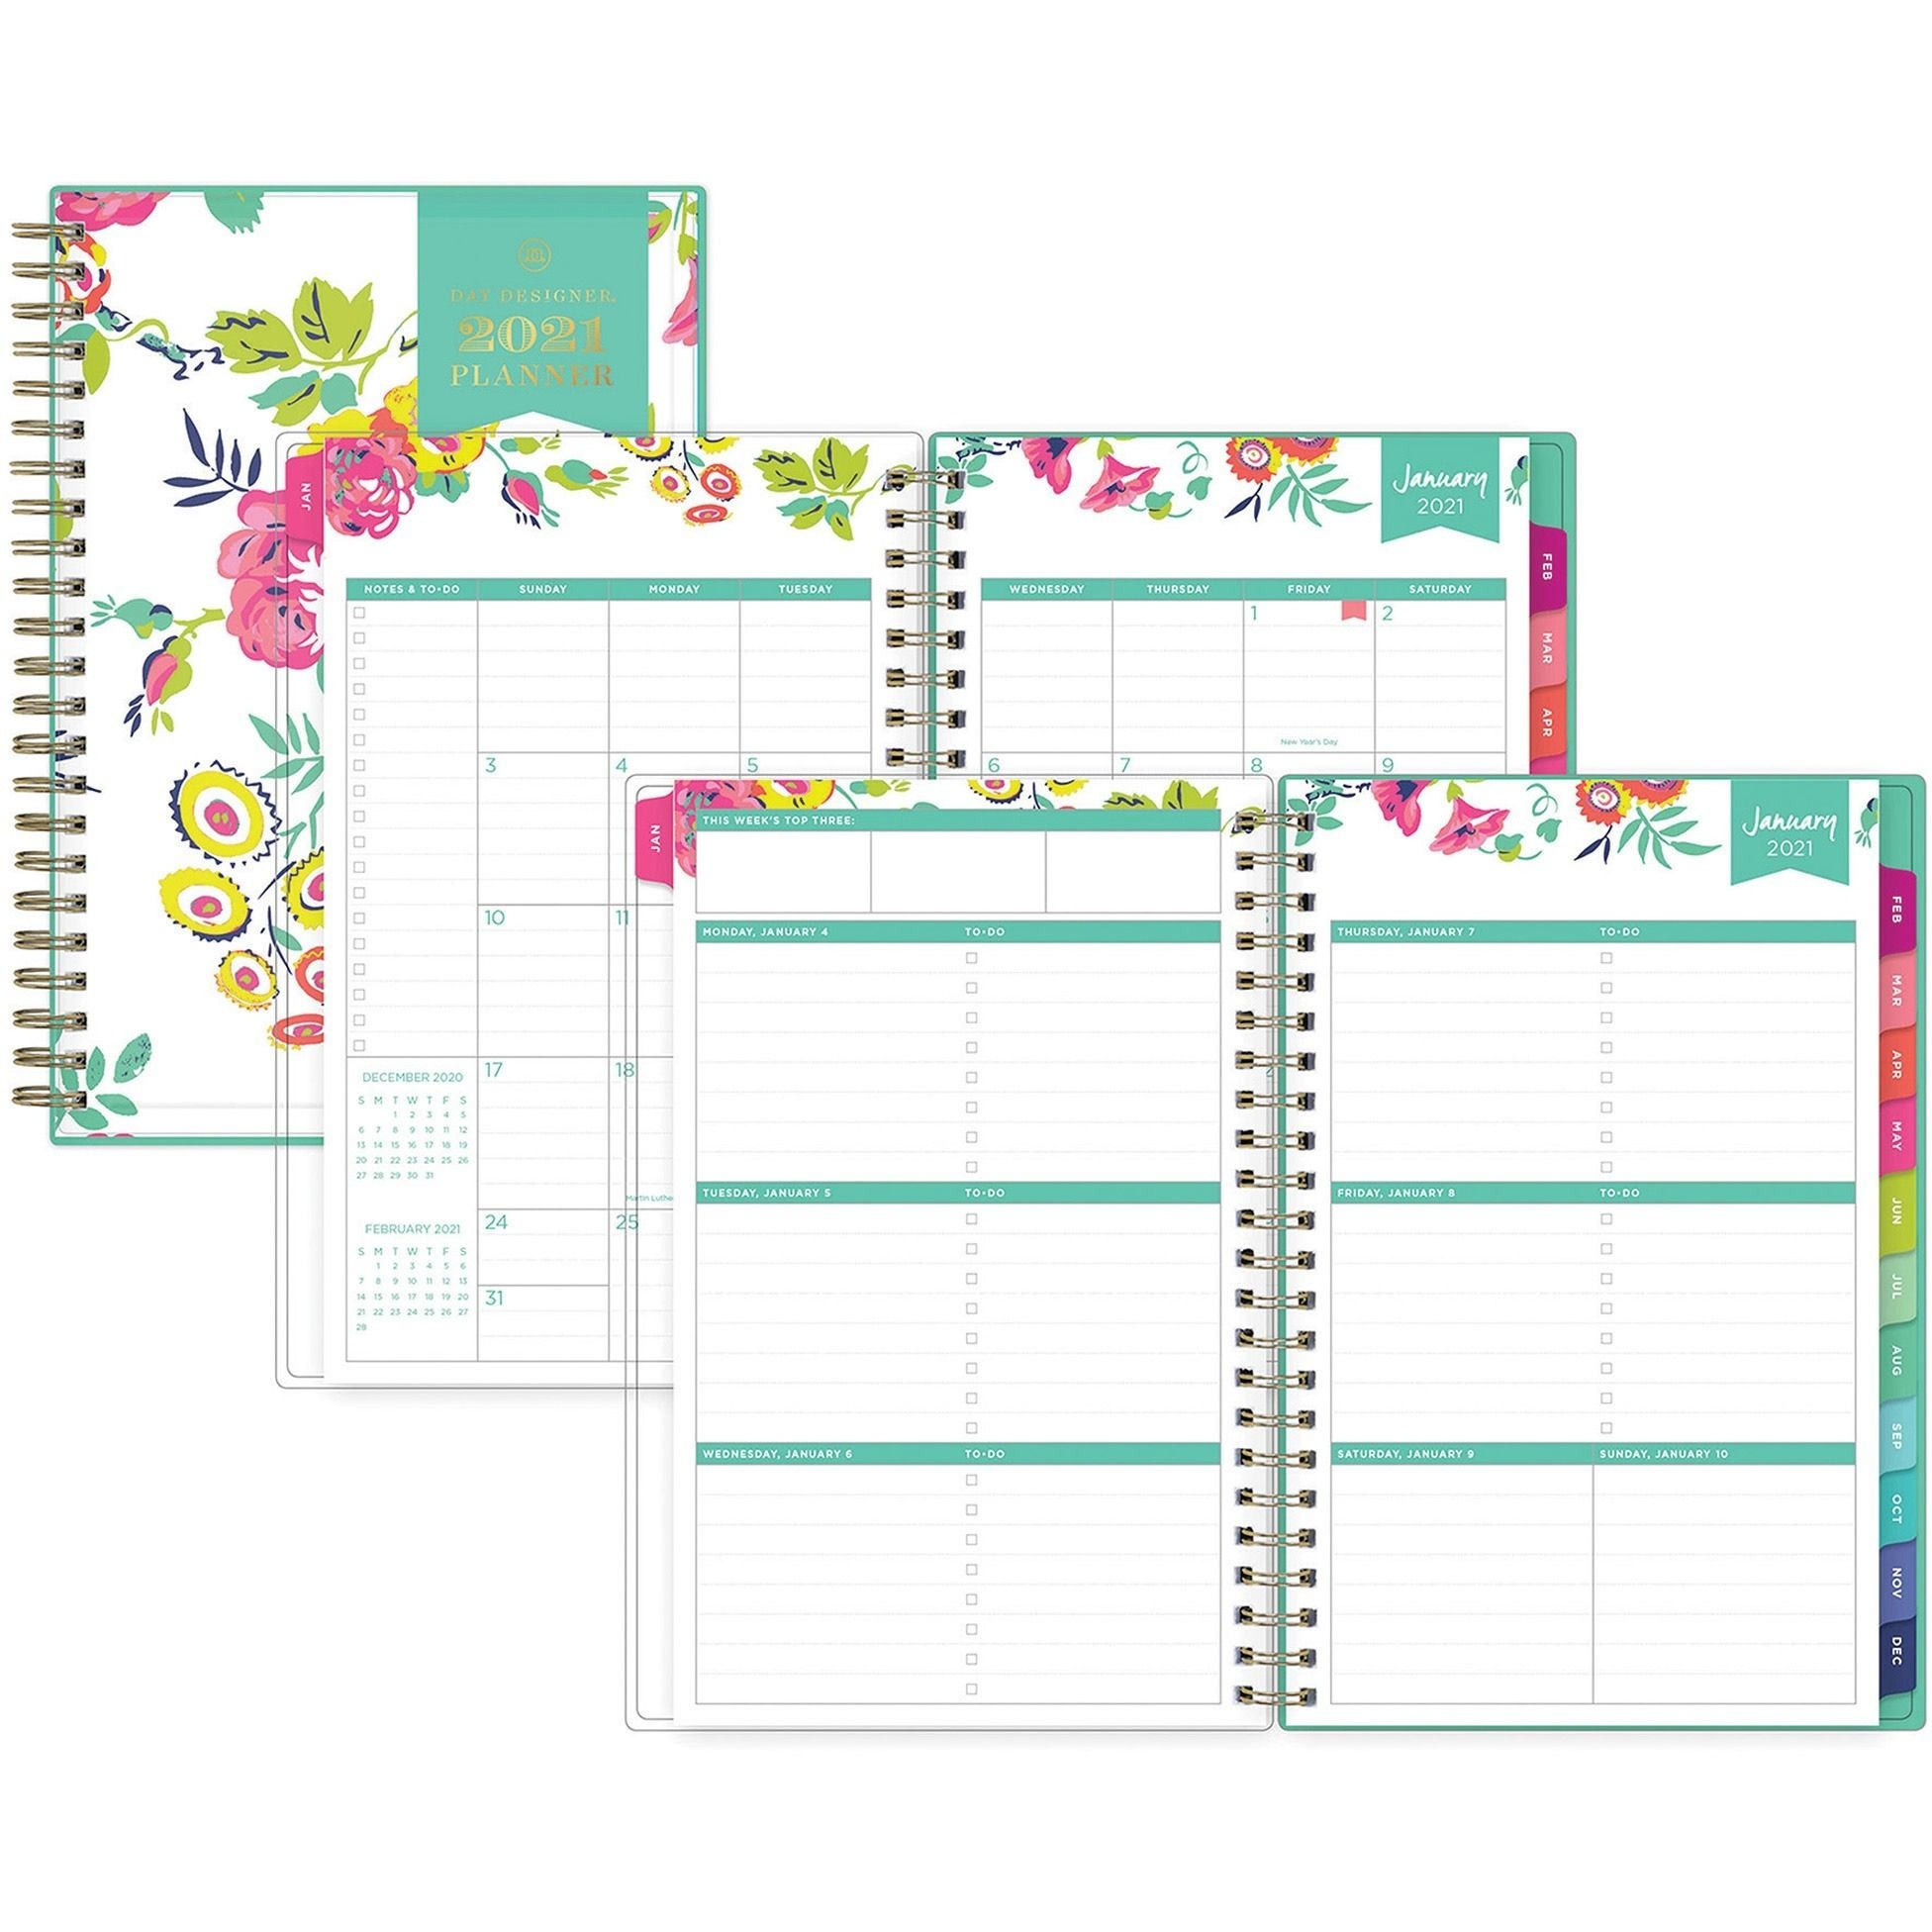 "Blue Sky Day Designer Weekly/monthly Planner Julian Dates Weekly, Monthly 1 Year January 2021 Till December 2021 5"" X 8"" Sheet Size Floral"